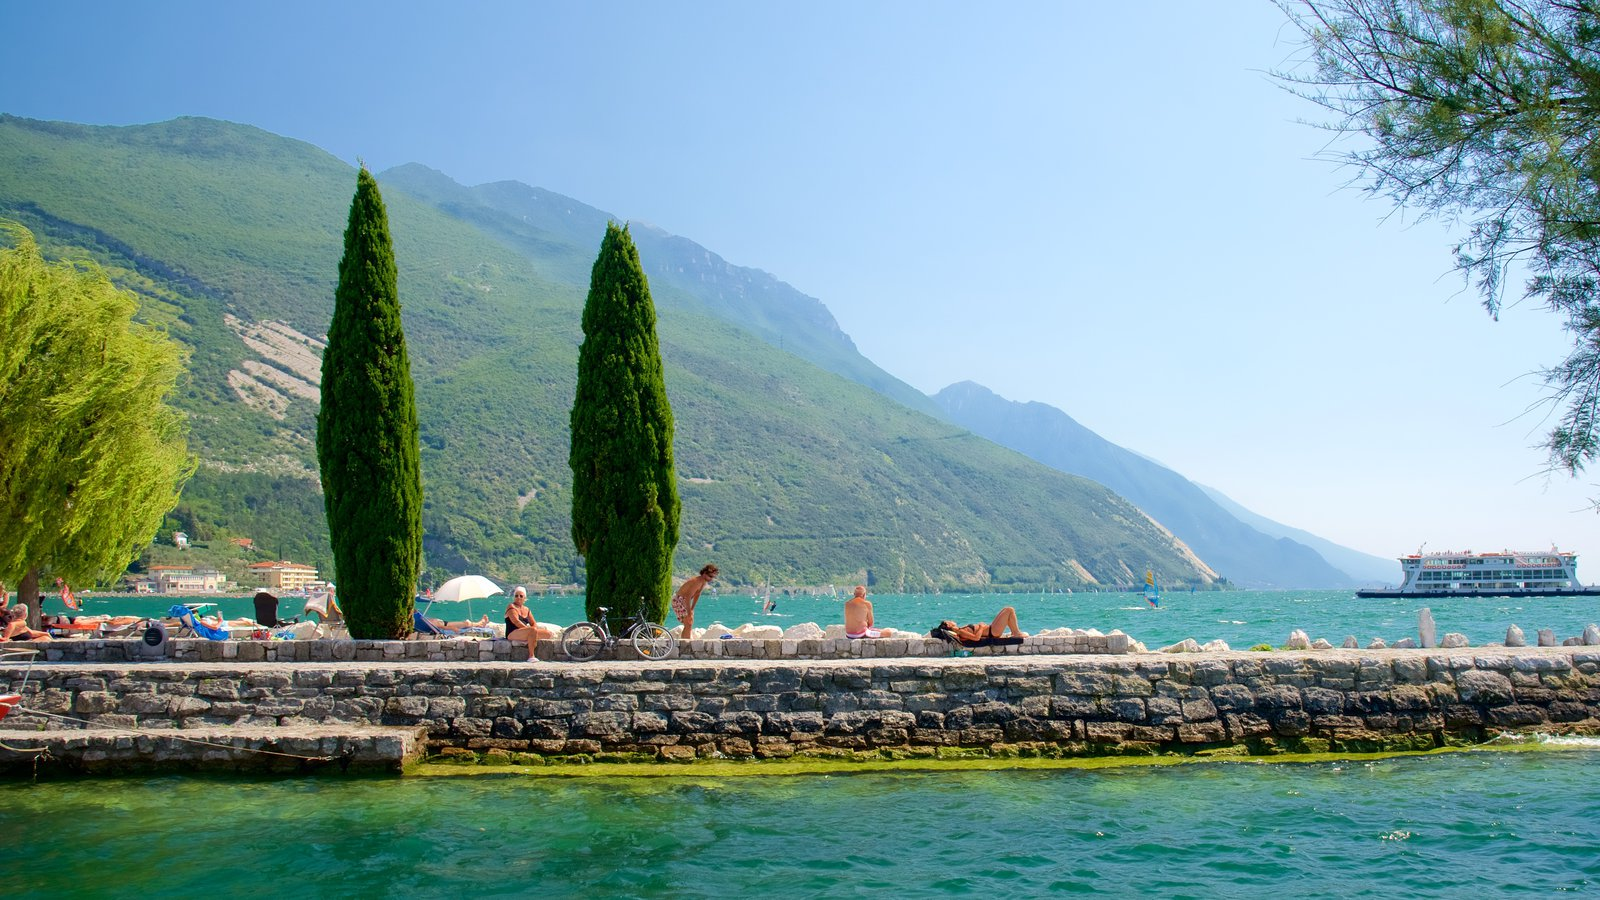 Nago-Torbole showing boating and general coastal views as well as a small group of people